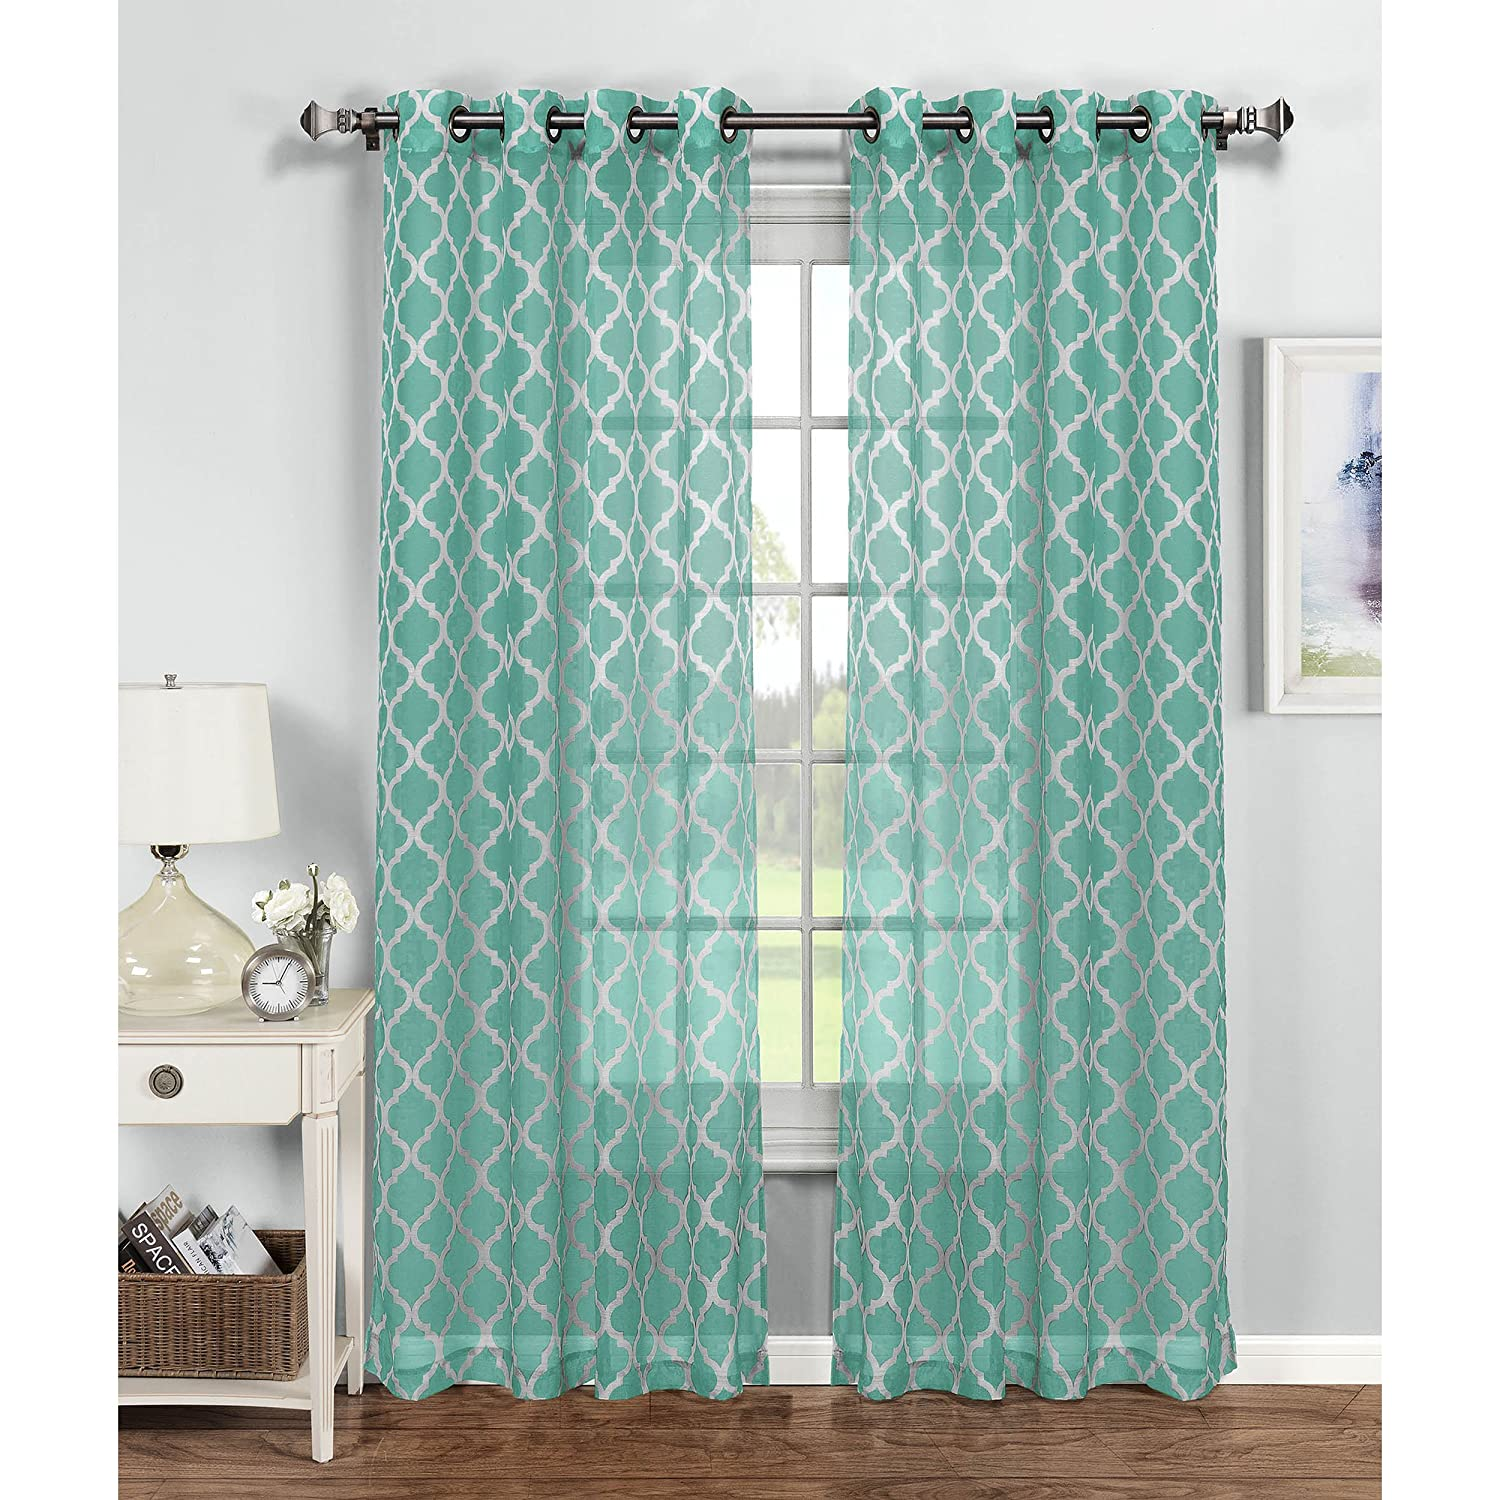 Window Elements Morocco Printed Sheer Extra Wide Grommet Curtain Panel, 54 x 84, Beige/White 54 x 84 YMF Carpets Inc. YMC004516